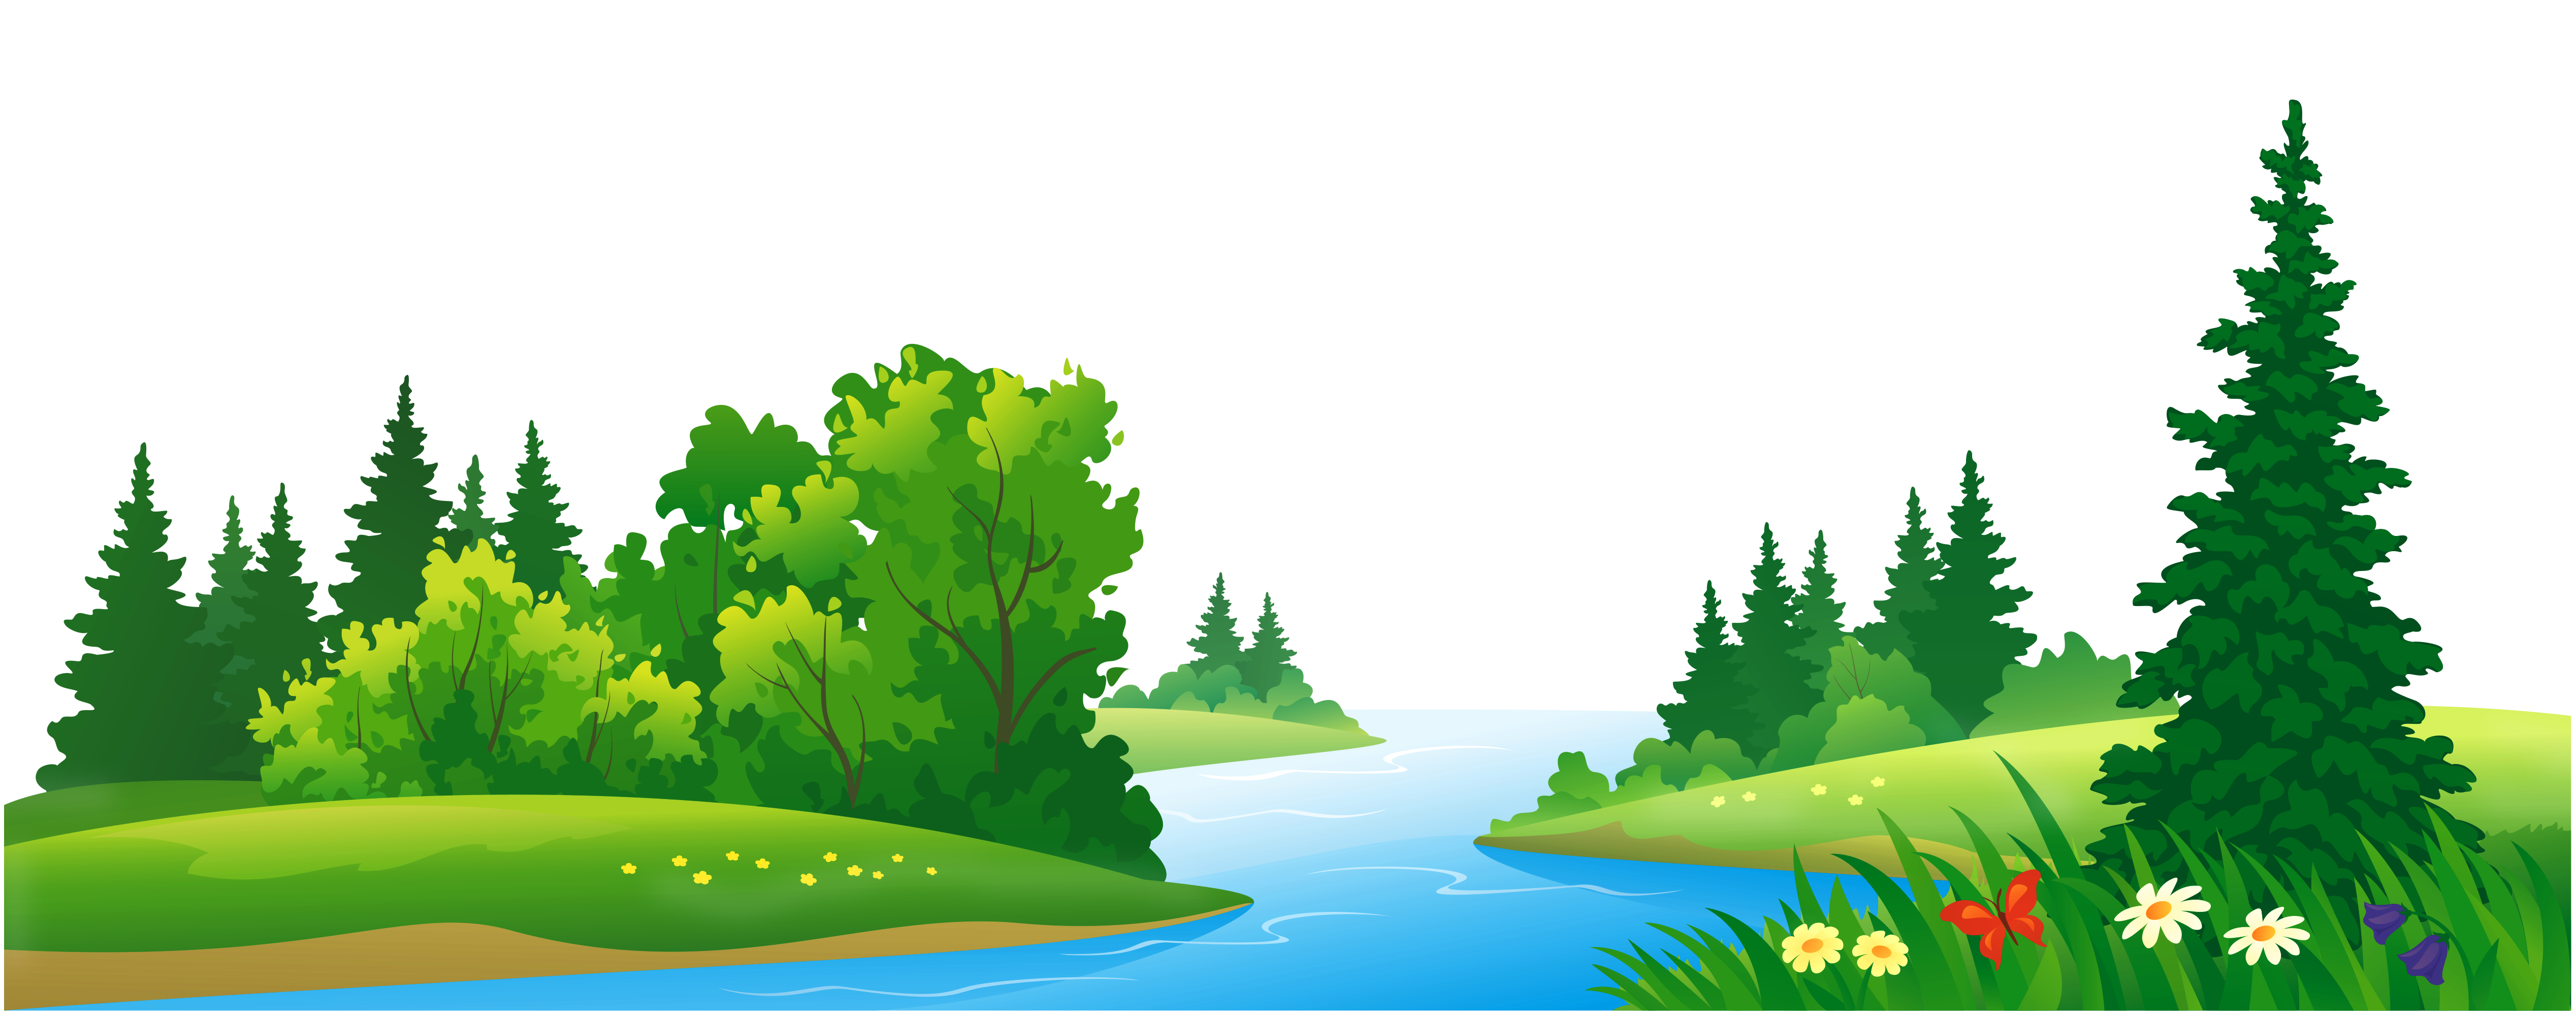 forest clipart-forest clipart-1